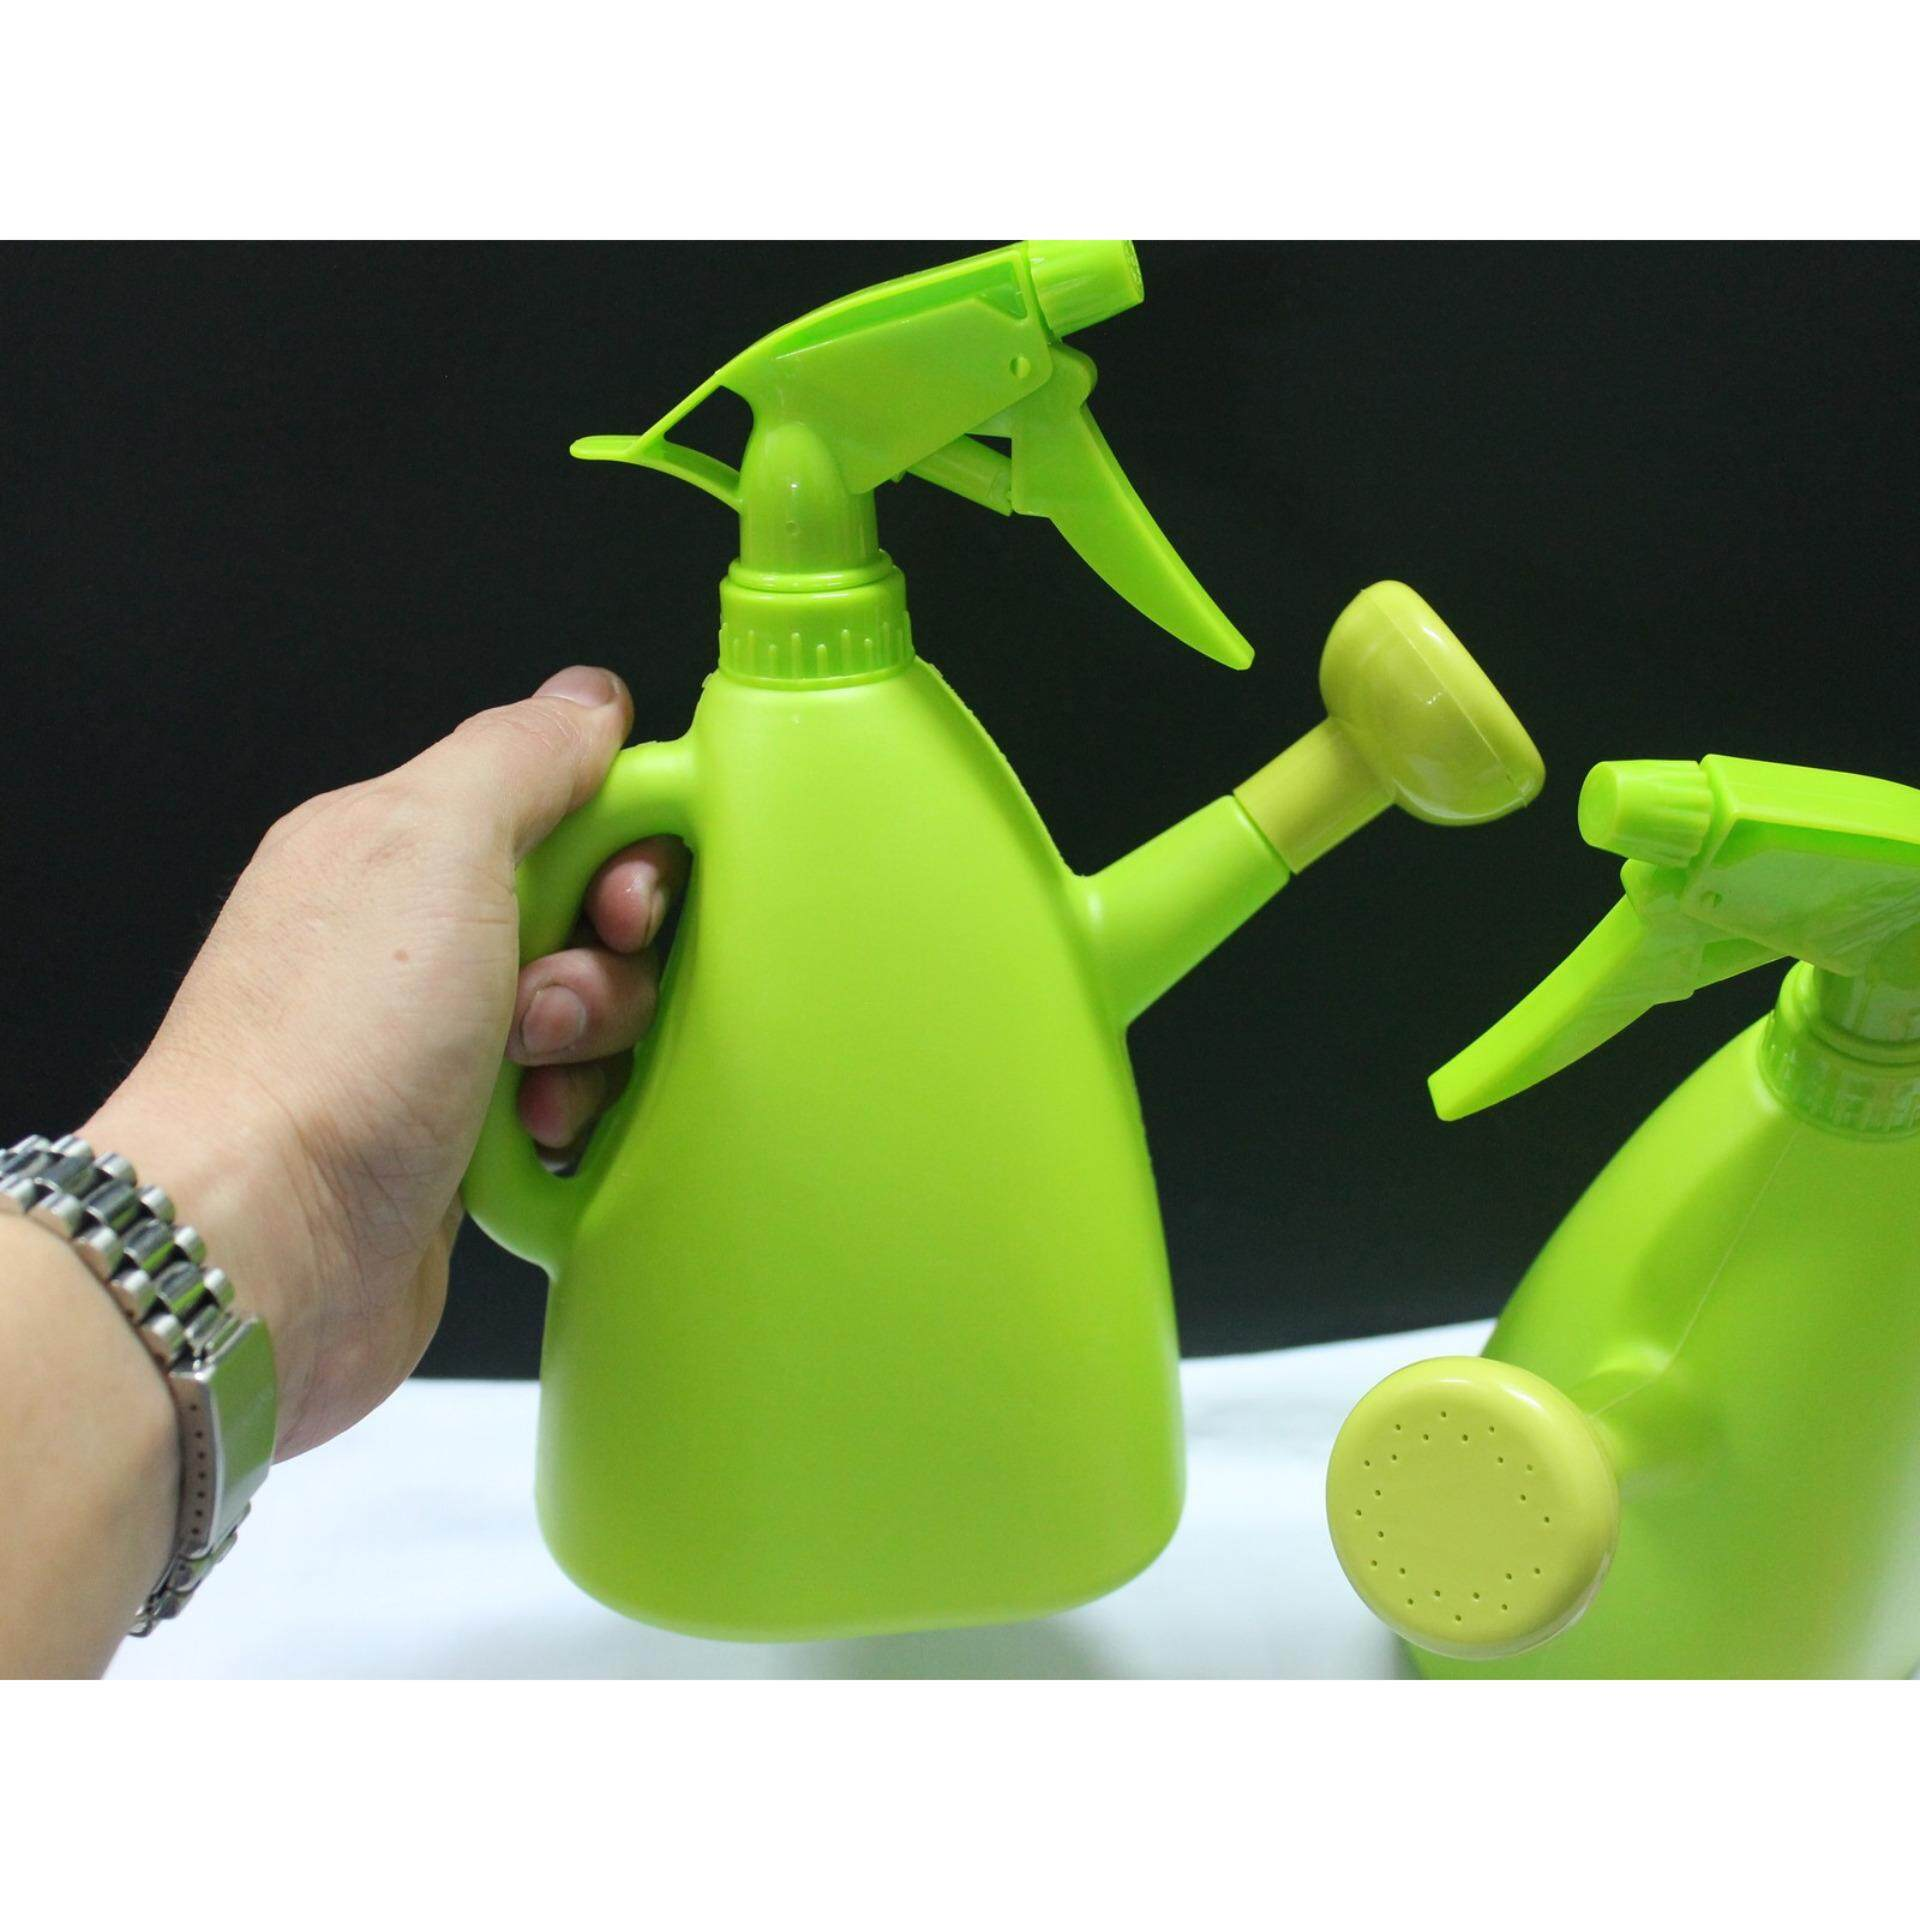 2pcs 2 Functions Bottle Spray and Pour Water (green)